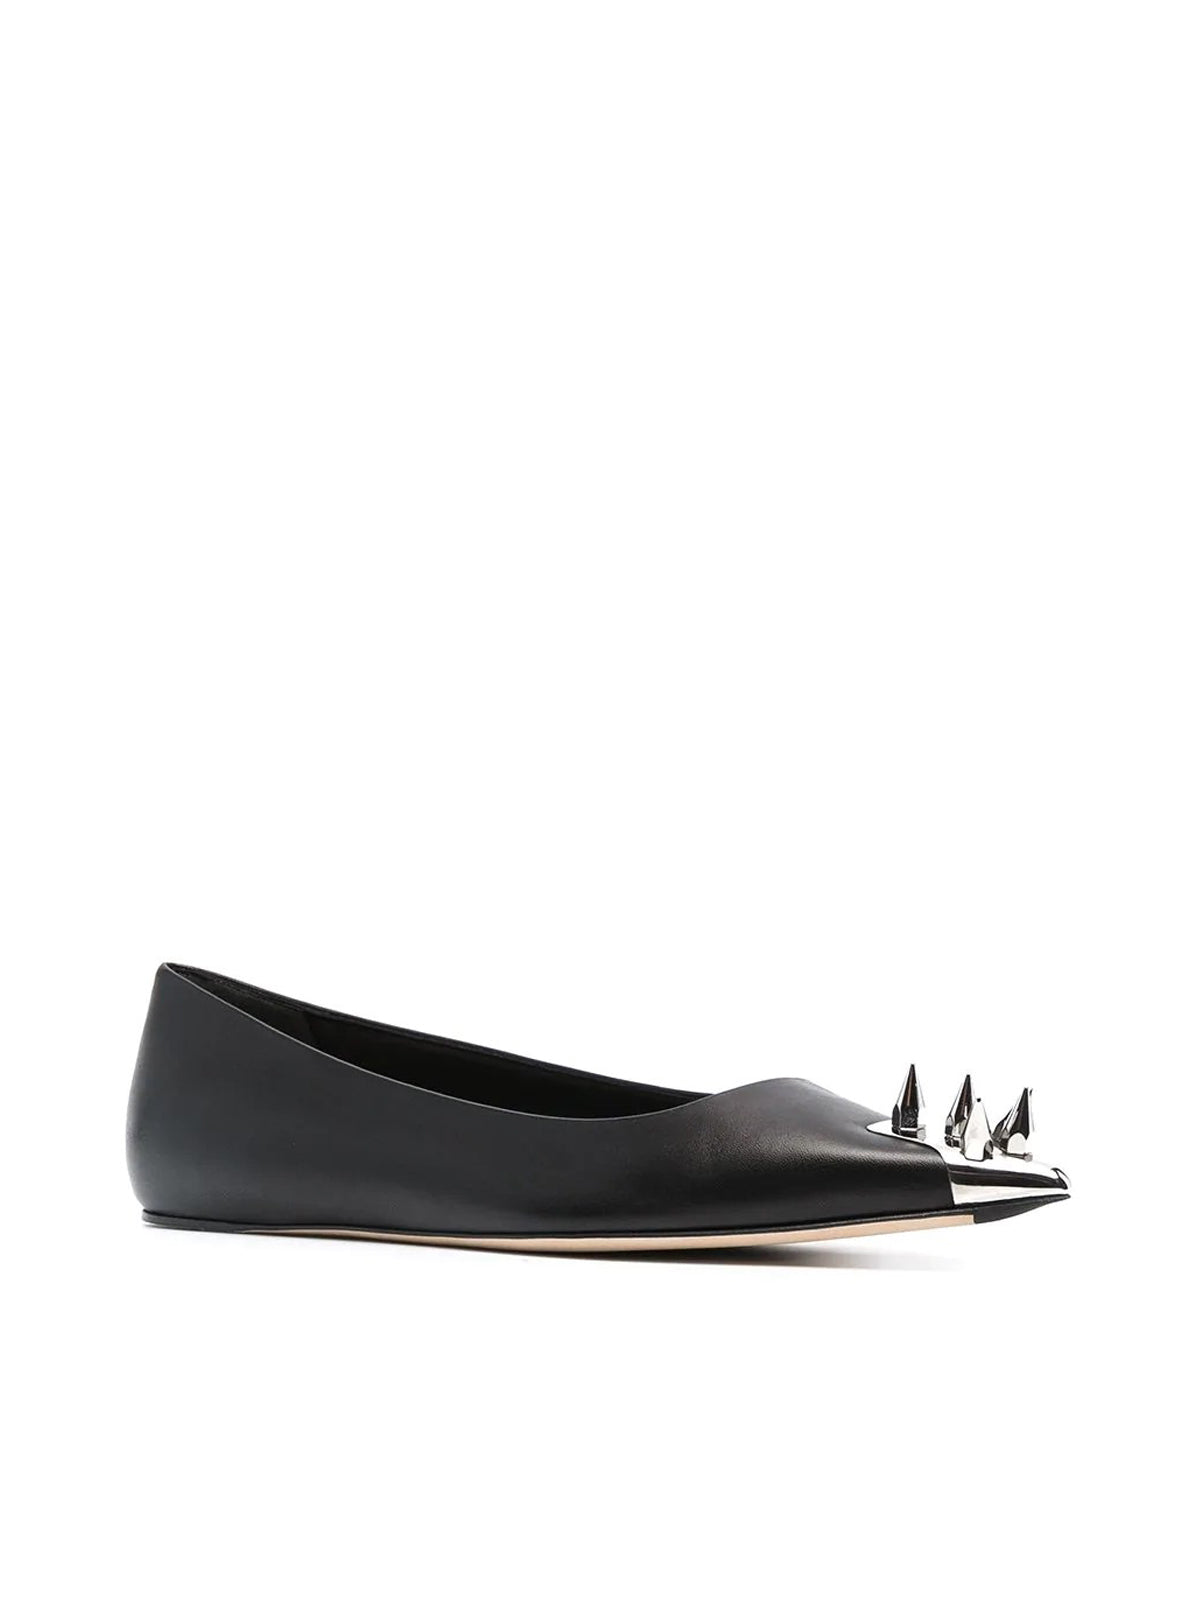 spike stud ballerina shoes